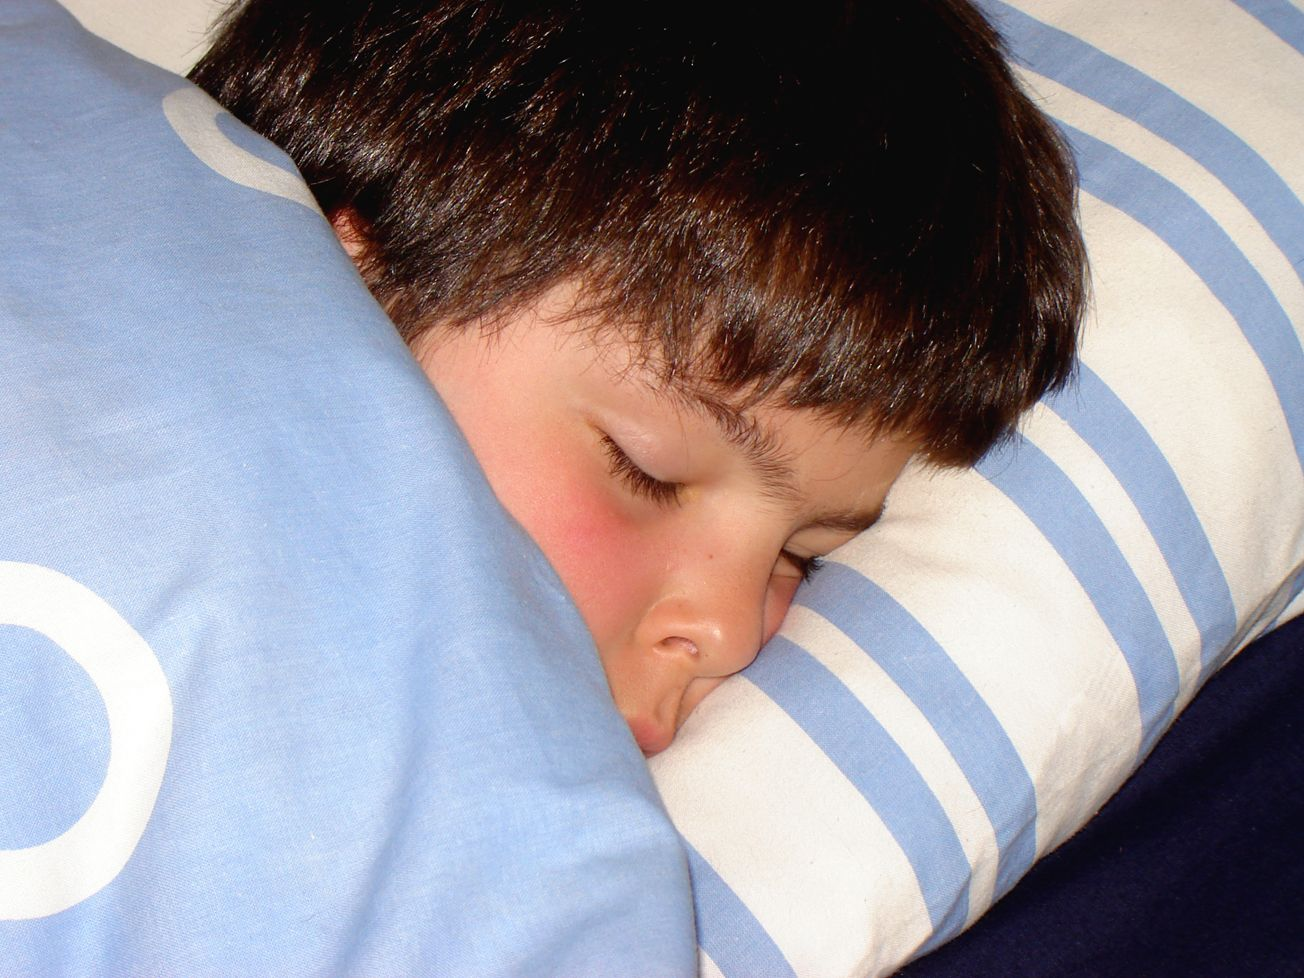 Bedwetting An embarrassing moment at night for kids